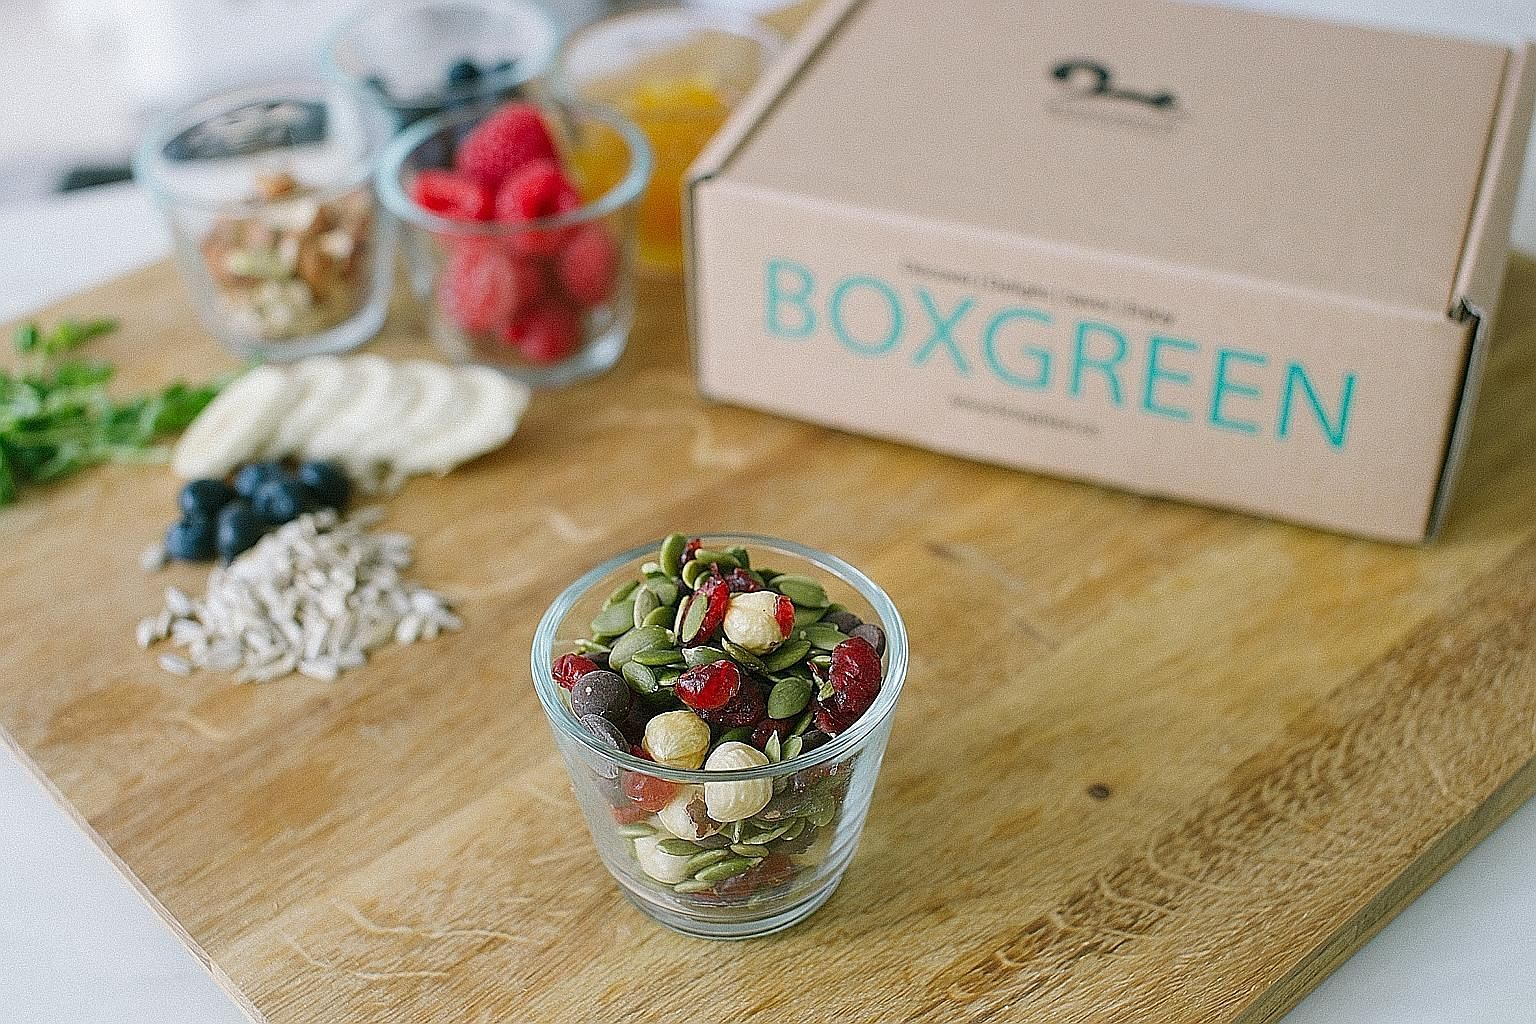 Healthy snacks from BoxGreen, one of the social enterprises at the Singapore Coffee Festival. Festival-goers can complete fun and easy socially conscious tasks at the event to redeem rewards such as an eco-friendly reusable coffee tumbler.